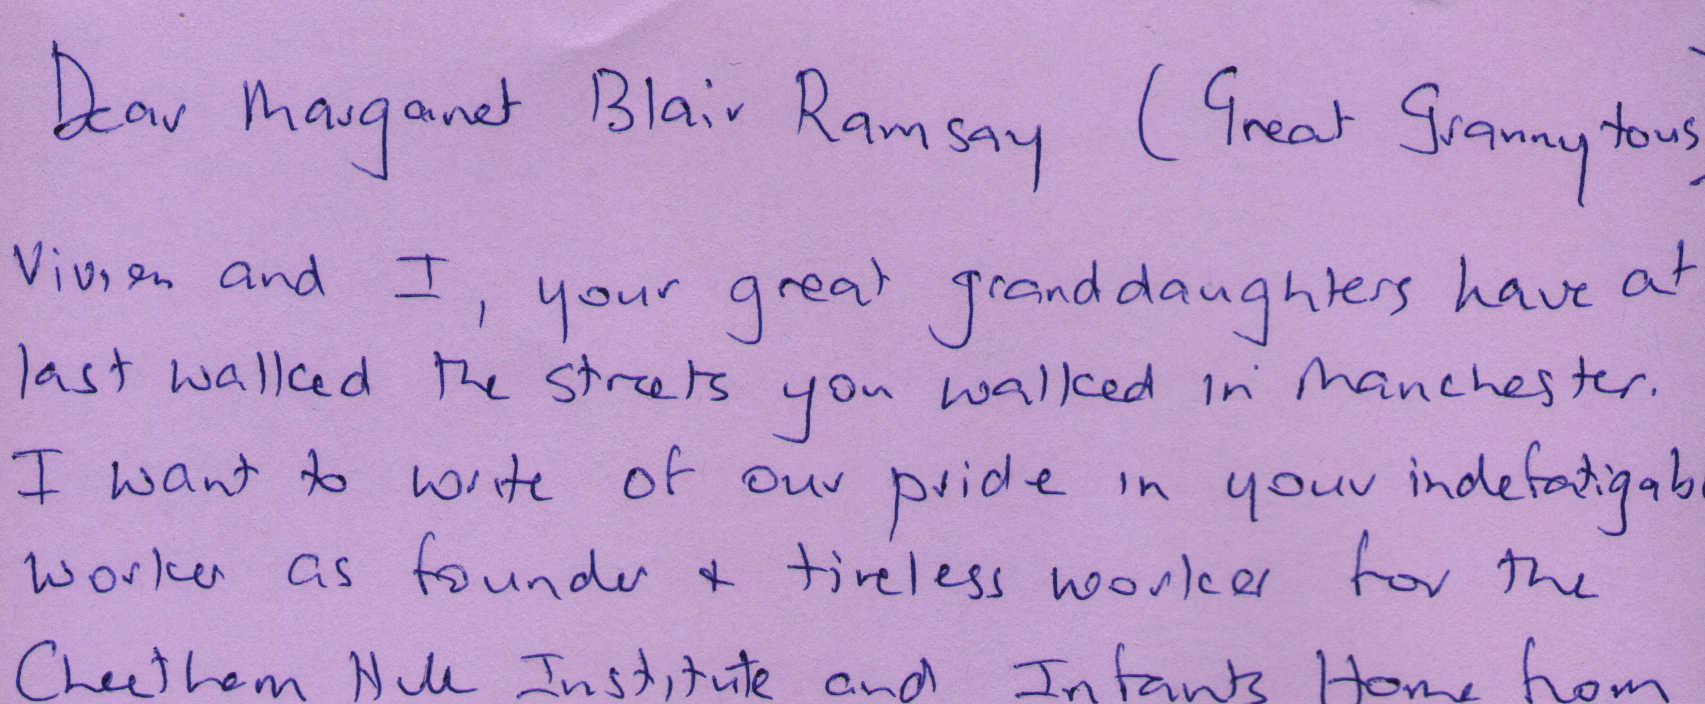 Letter to Margaret Blair Ramsay from Frances White